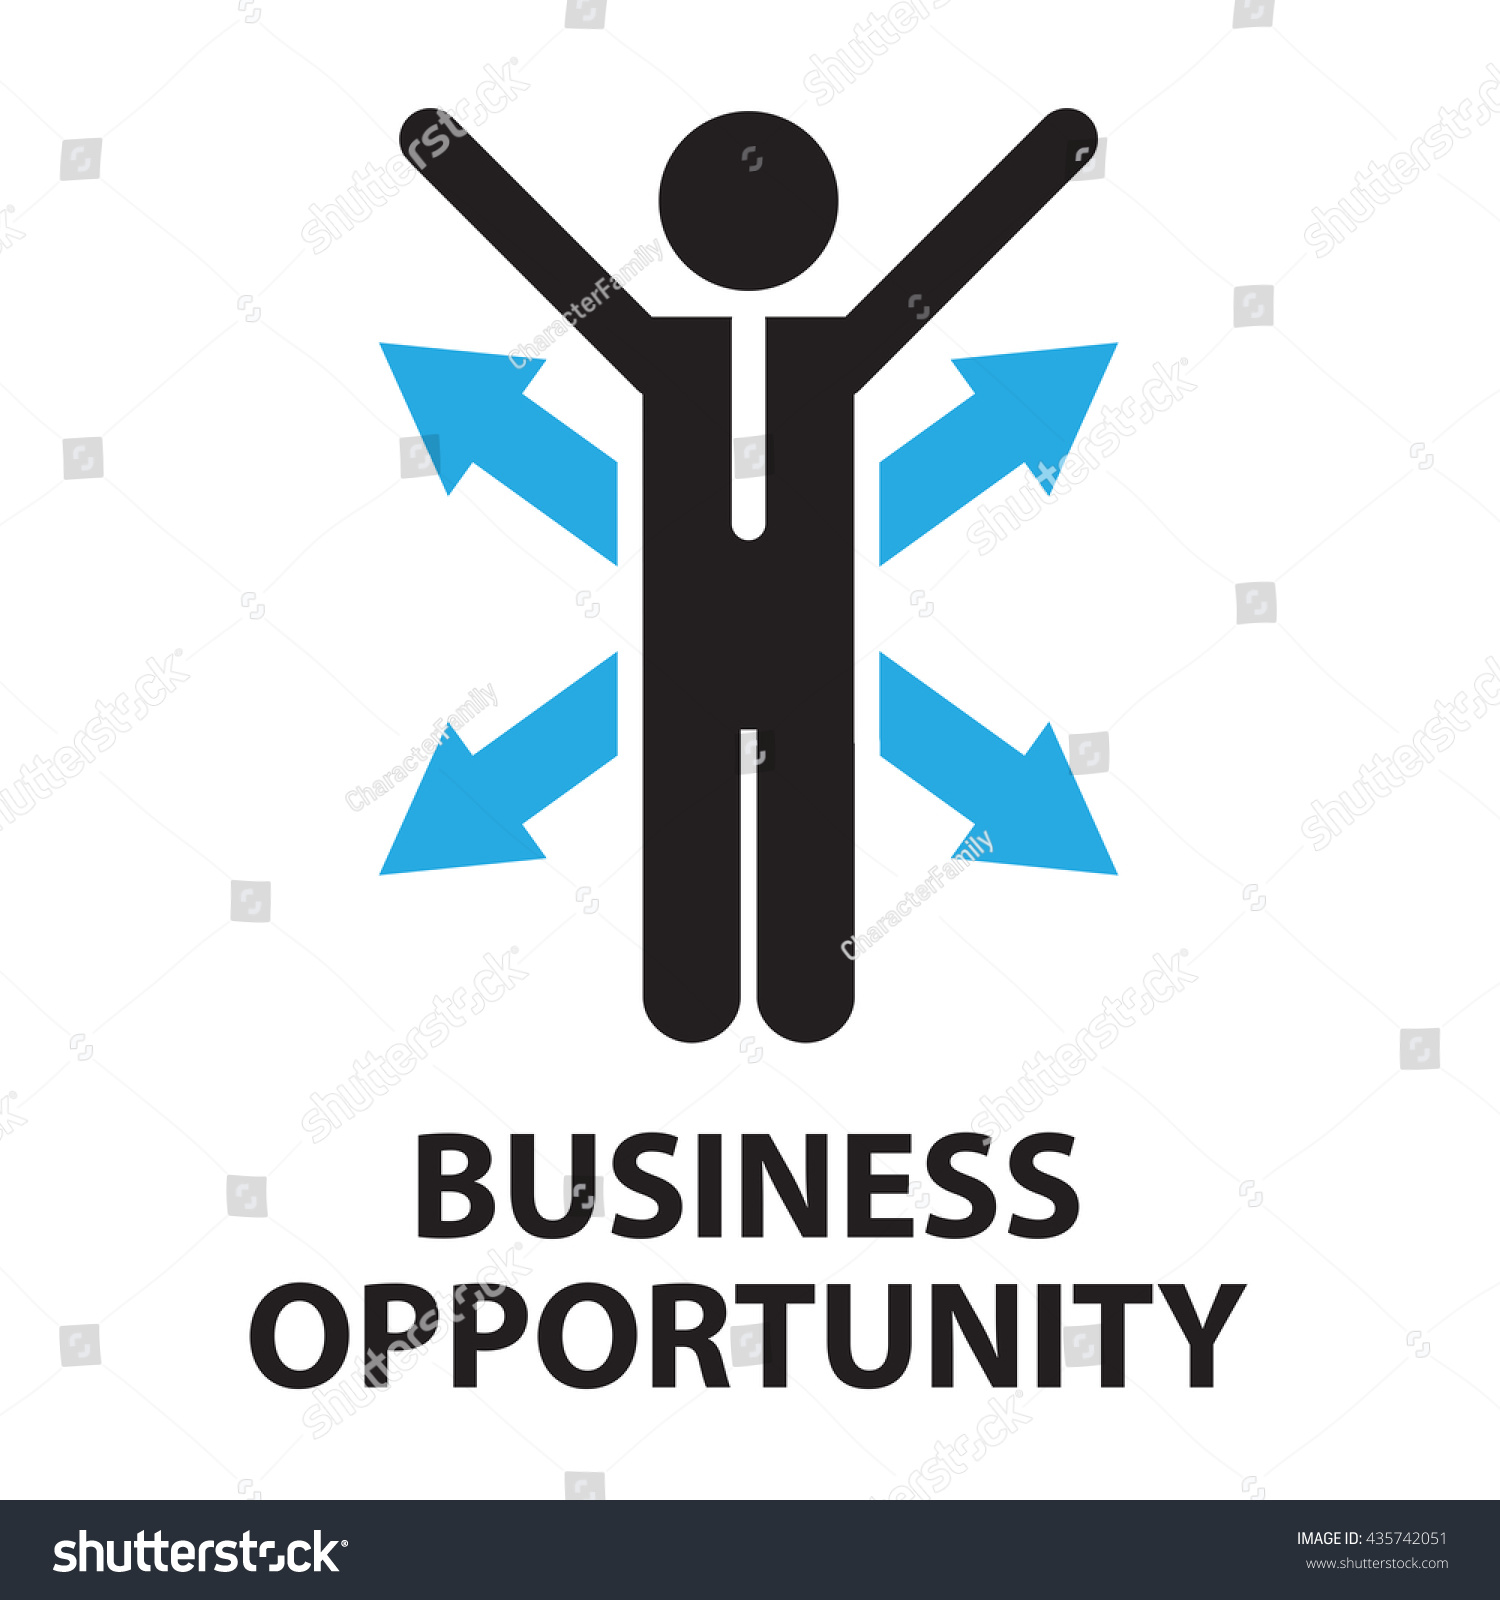 business opportunity The opportunity for small business is to specialize in delivering highly focused content 2 contractor referral service homeowners are challenged to find a reliable and trusted service for home repairs.